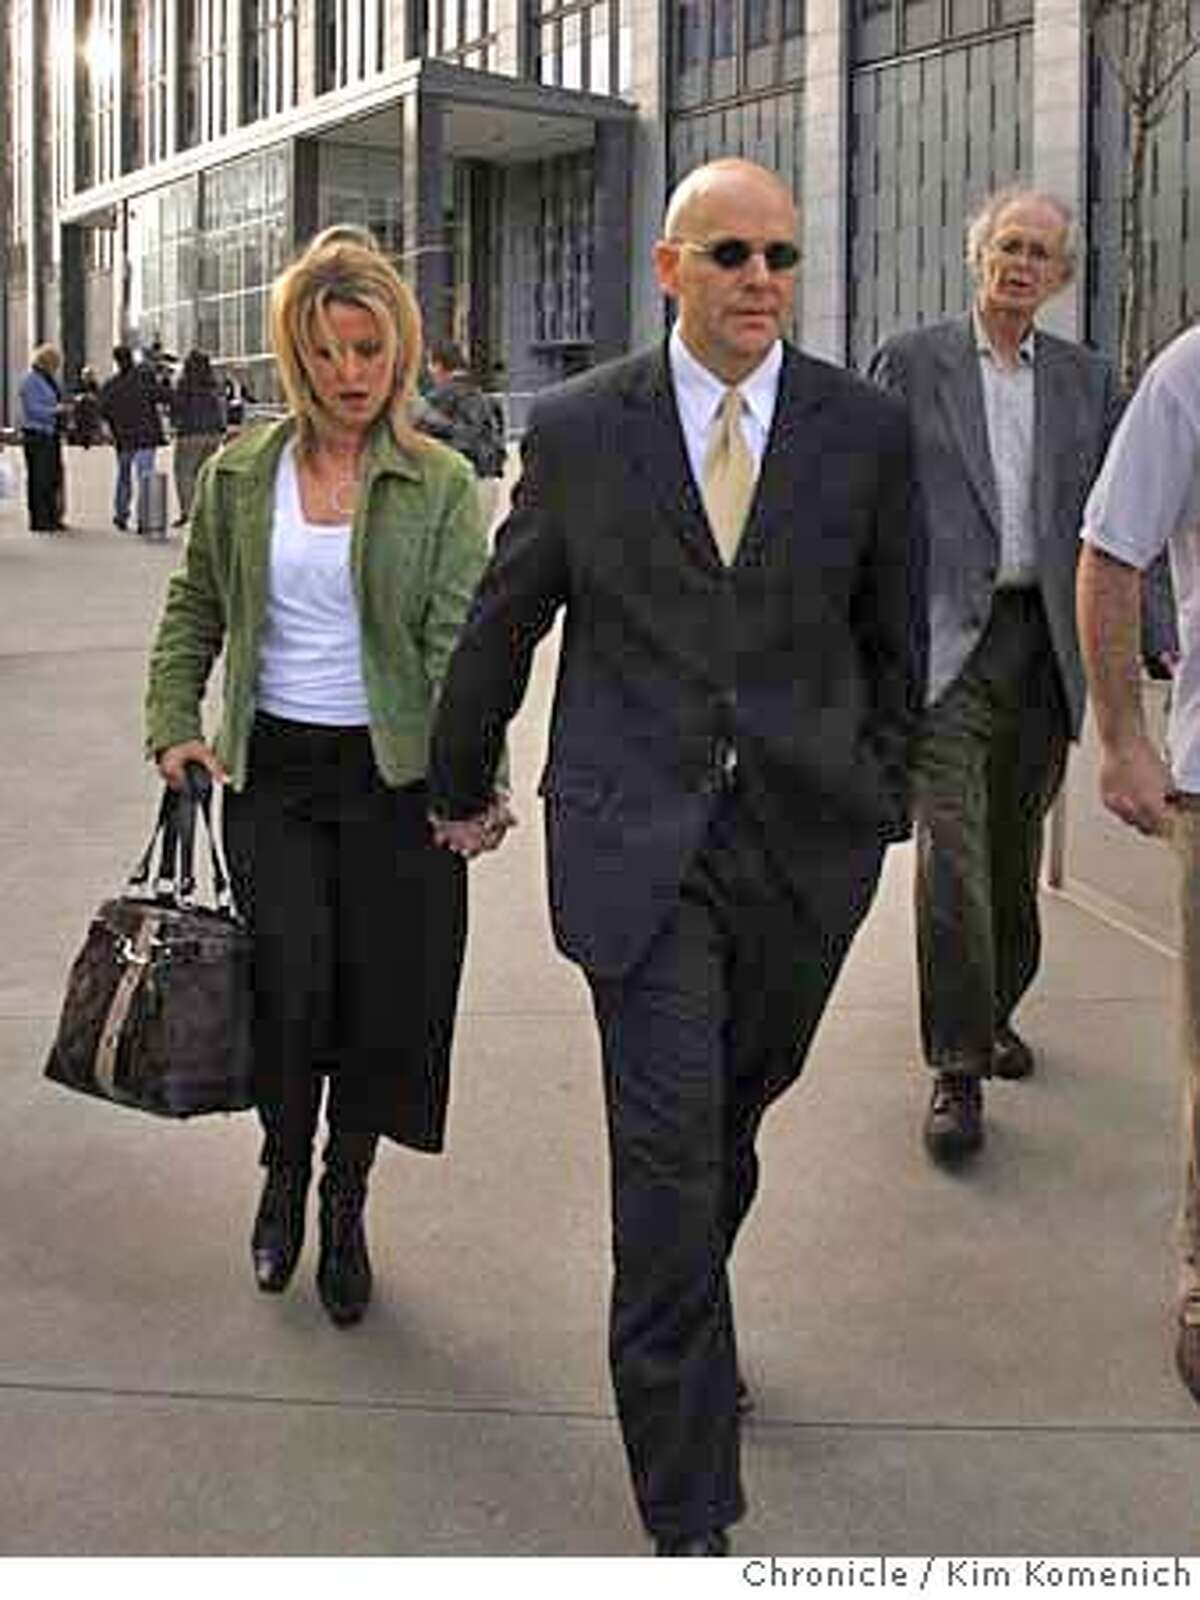 Attorney Troy Ellerman and unidentified companion exit the Federal Building in San Francisco after he leaking files in the BALCO case. The admission caused federal prosecutors to lift the subpoena against Chronicle reporters Mark Fainaru-Wada and Lance Williams. Photo by Kim Komenich/The Chronicle.